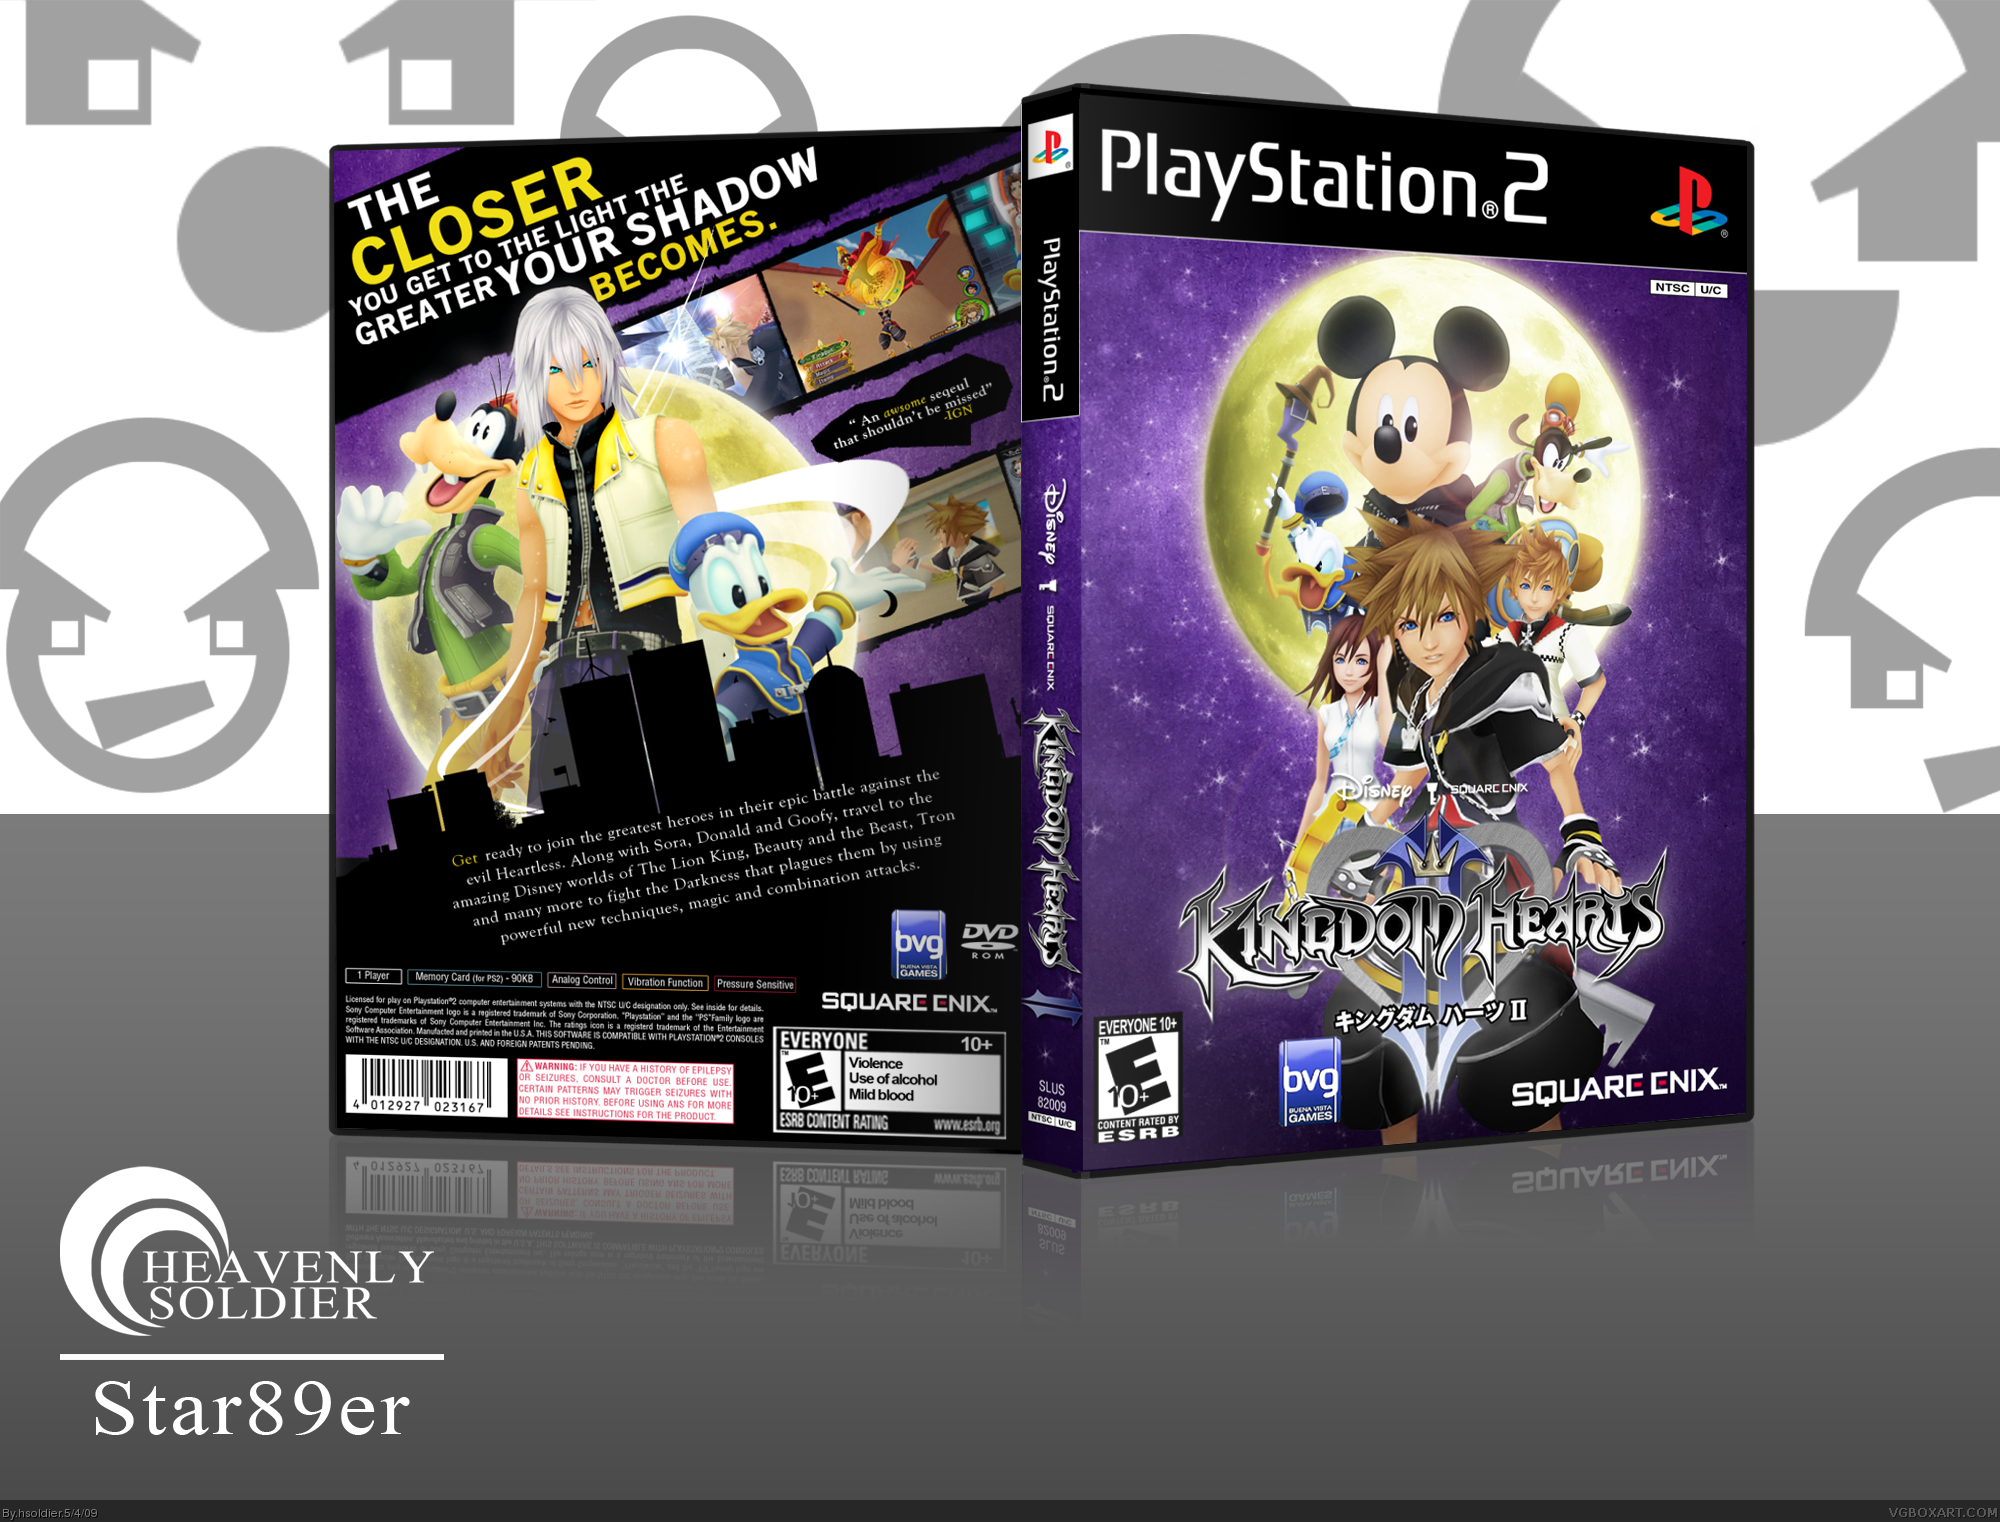 Kingdom Hearts 2 box cover